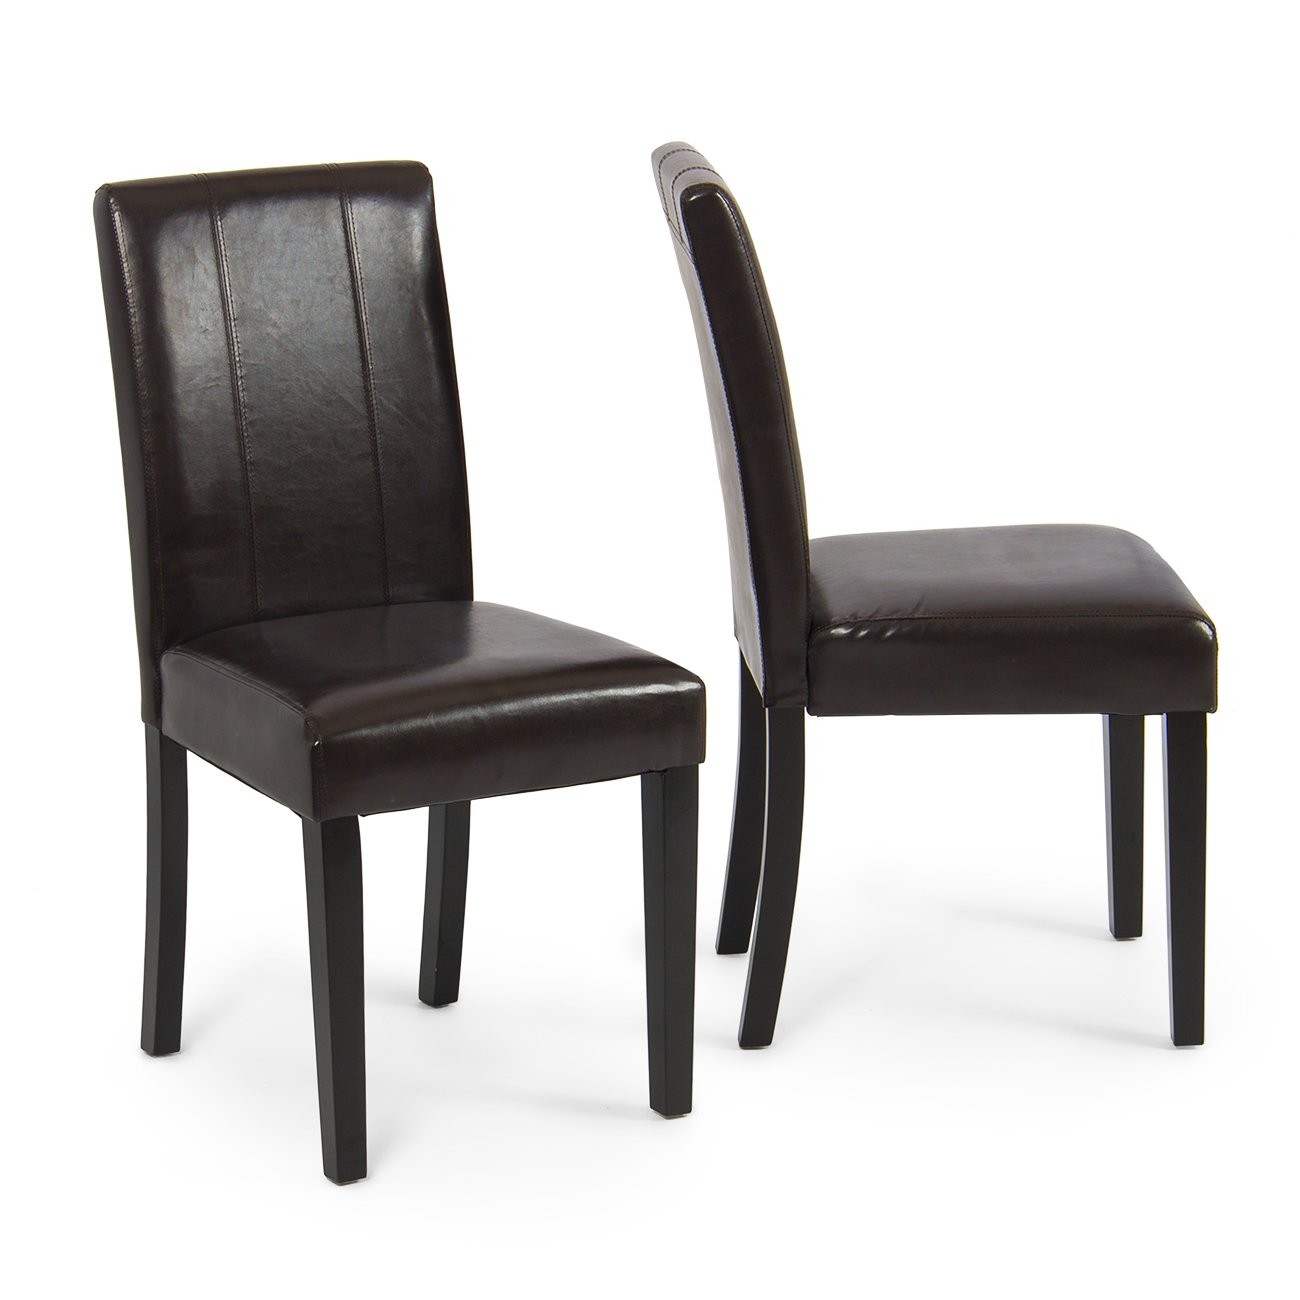 Leather parson dining chair parsons leather dining chair for Low back parsons dining chair